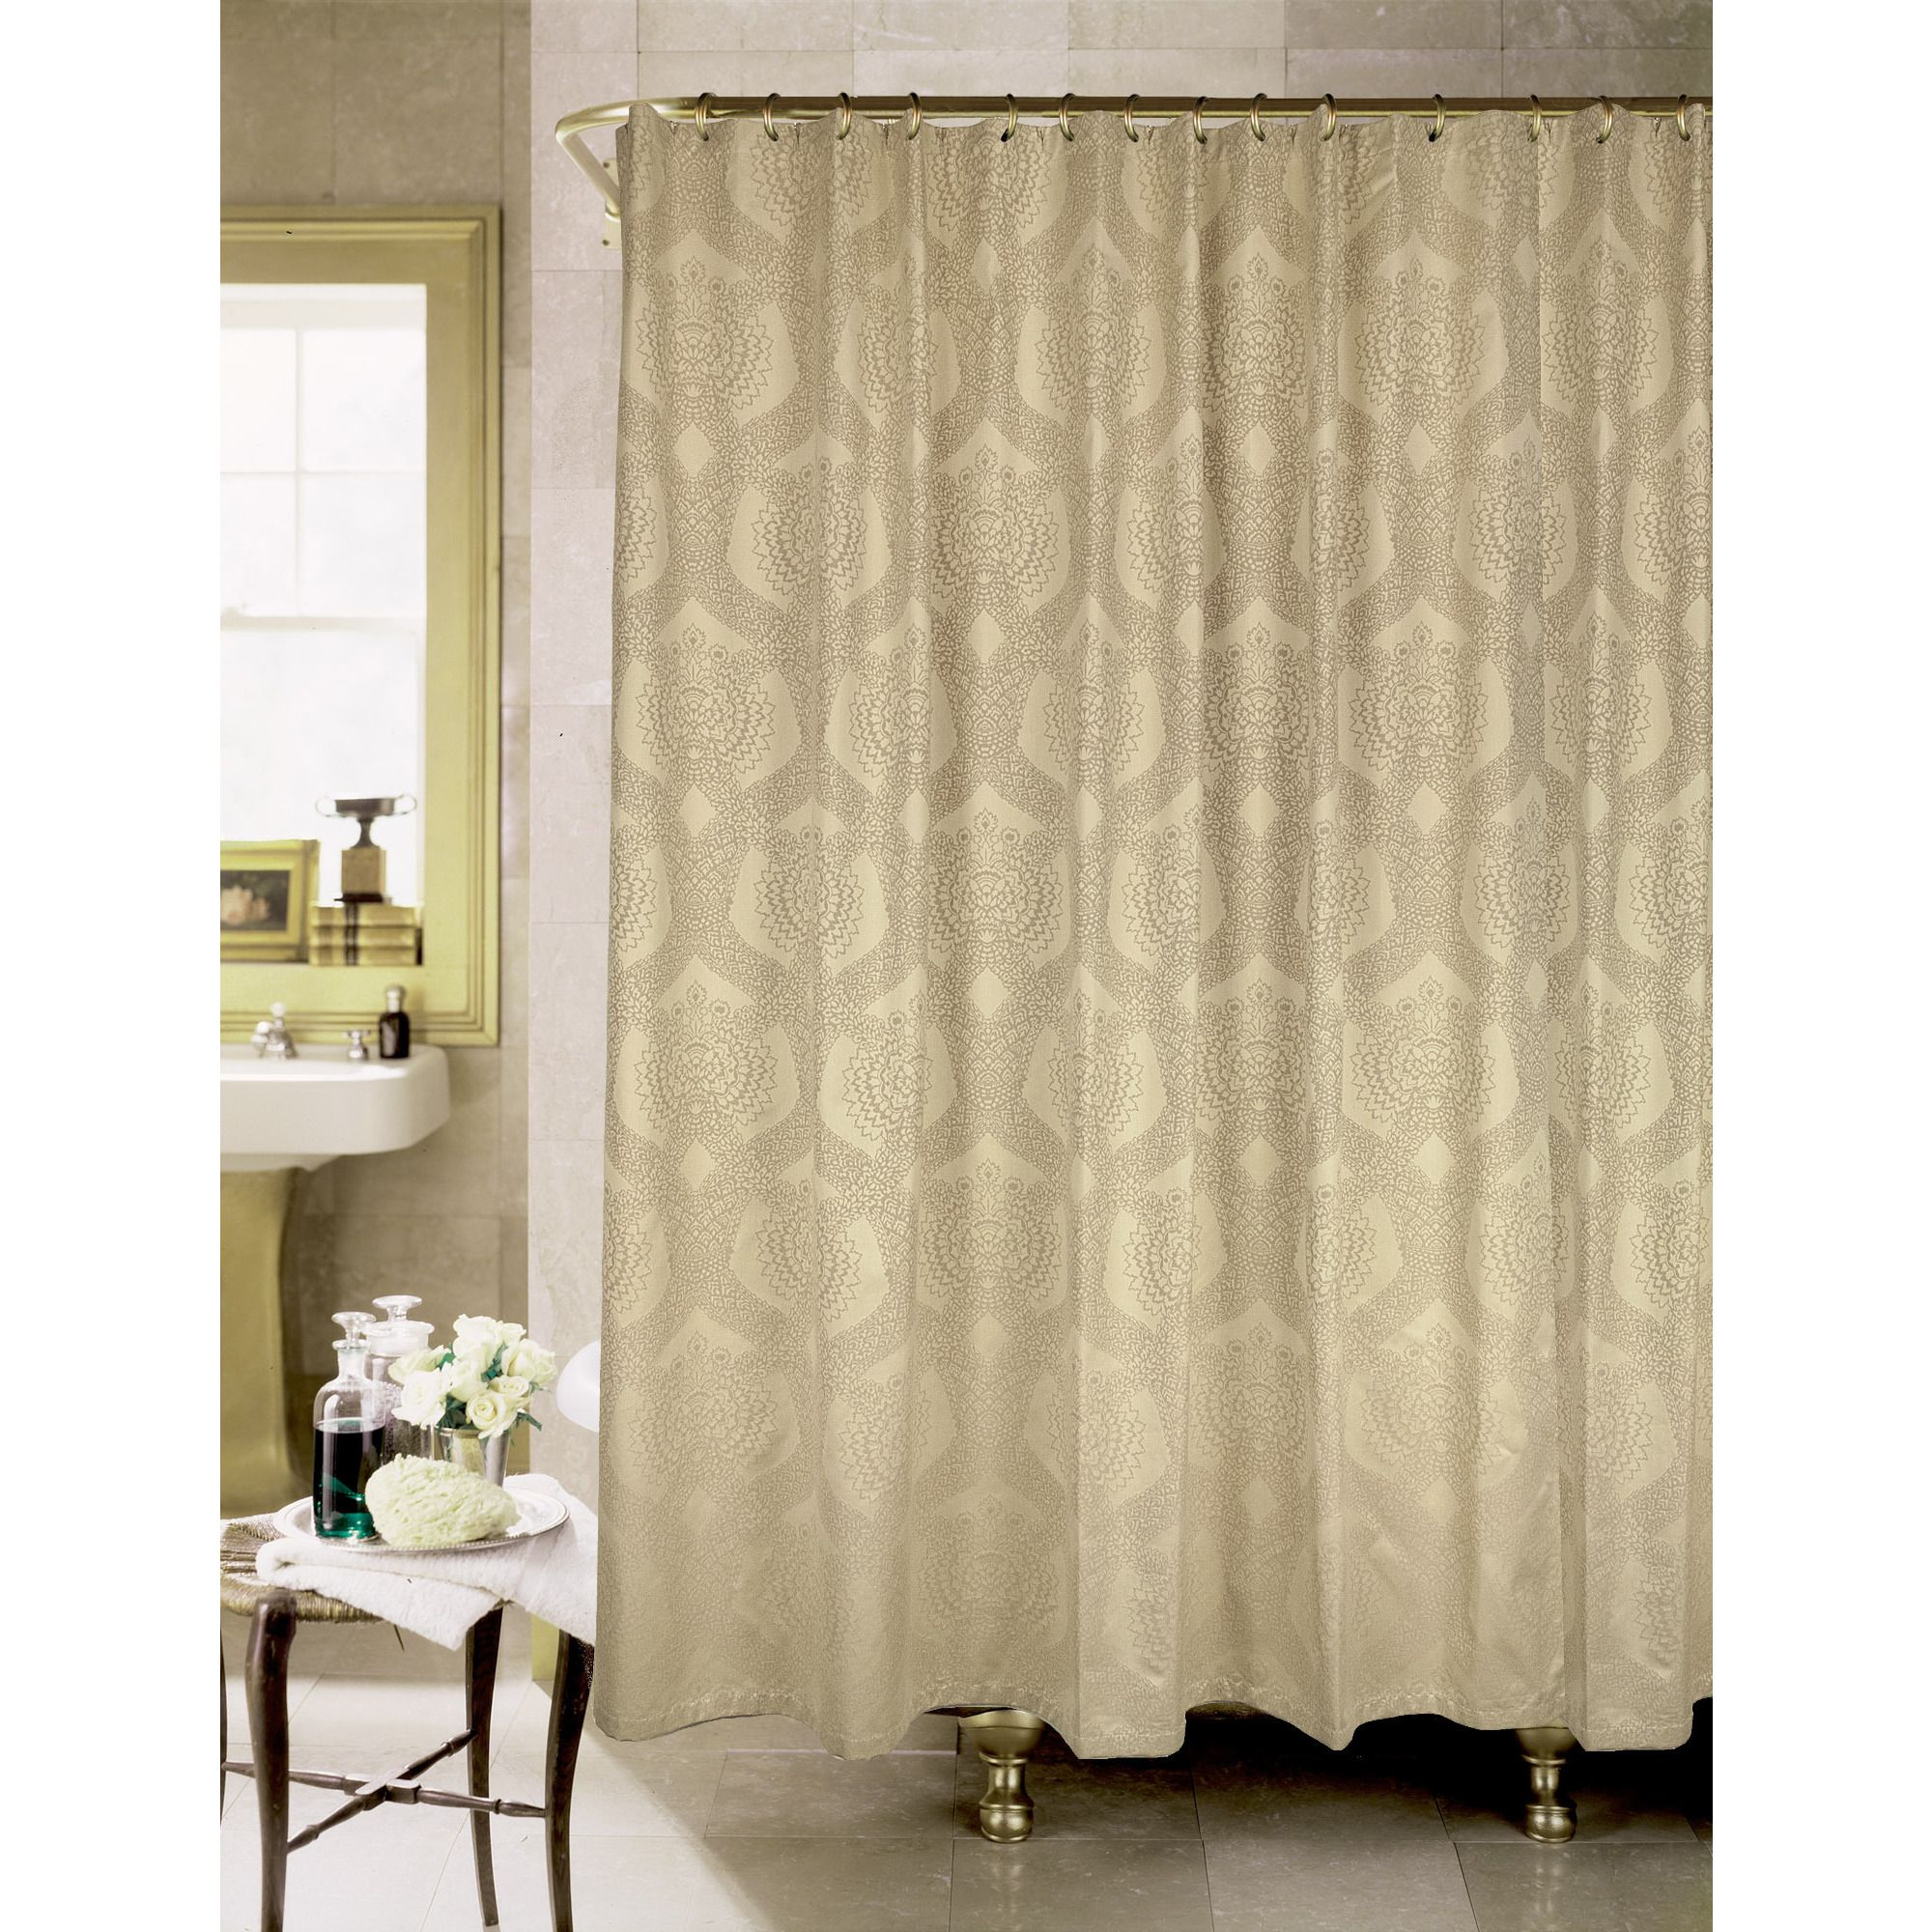 This High Quality Shower Curtain Features A Beautiful Neutral Tone Design Is Crafted From 100 Percent Cotton For Soft Touch And Long Lasting